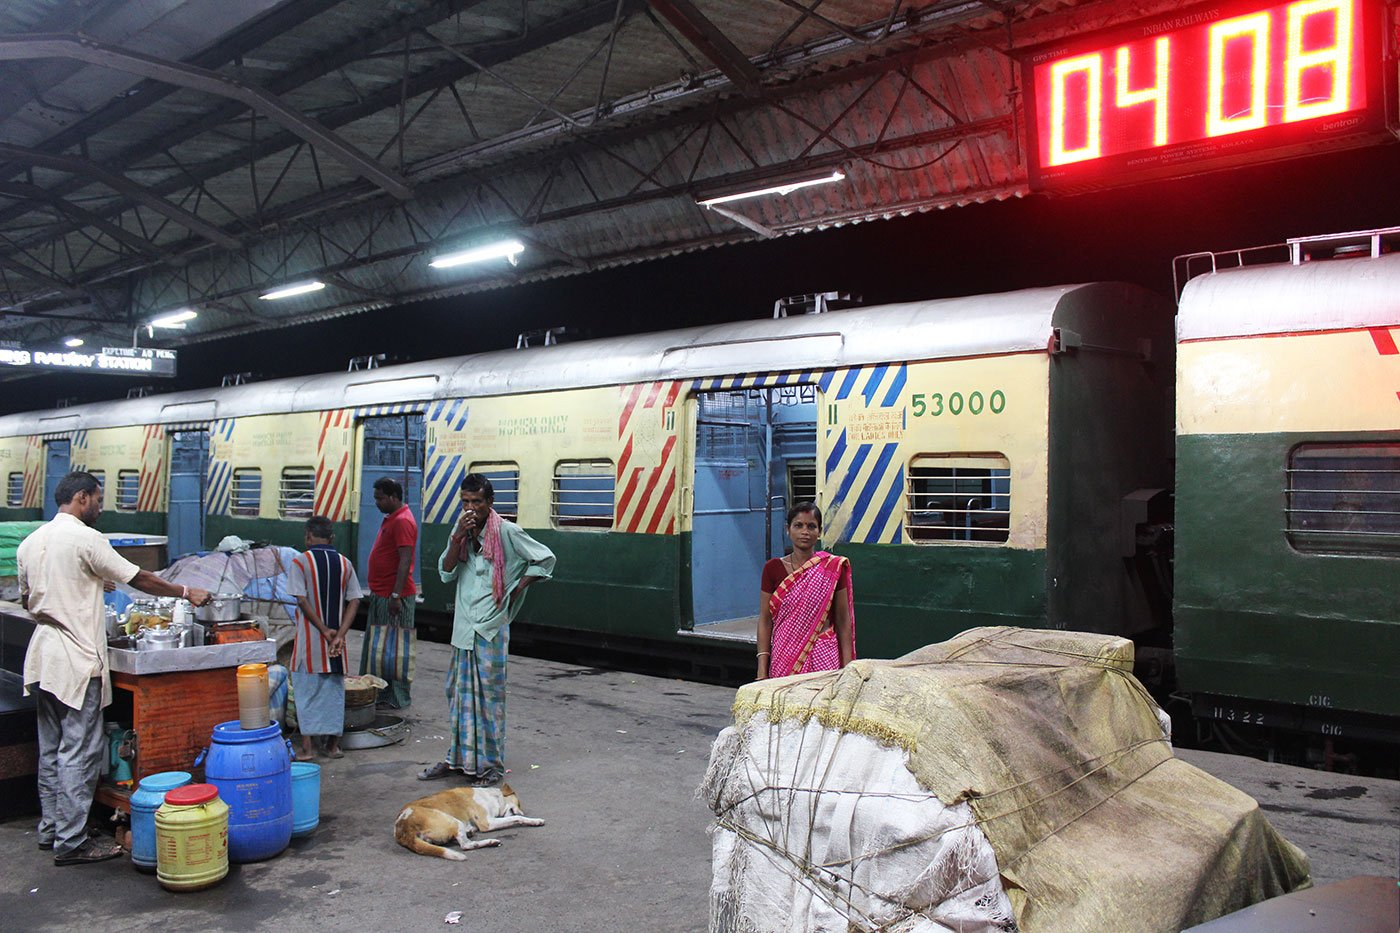 Breshpati Sardar at Canning railway station in the morning